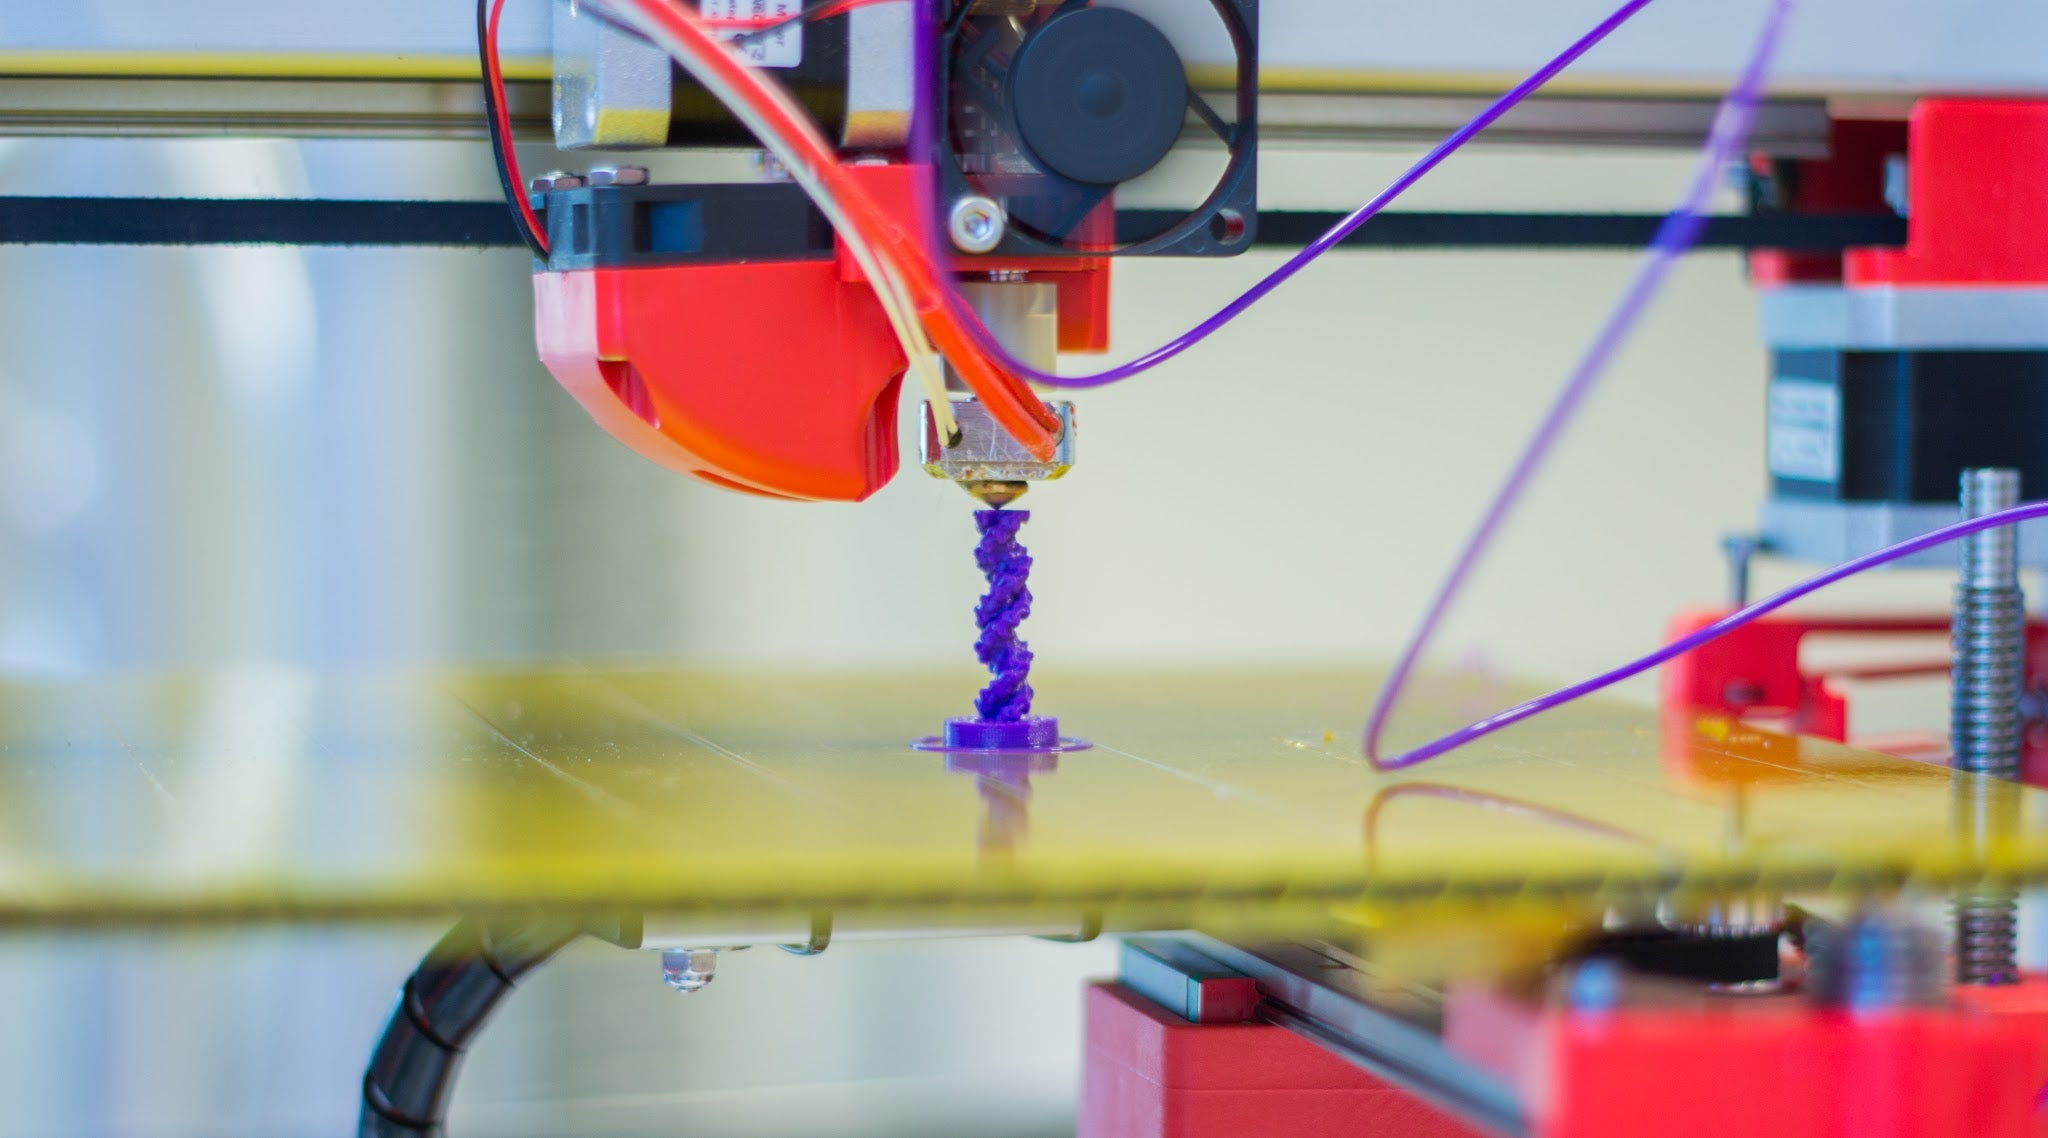 Picture of a 3D printer at work